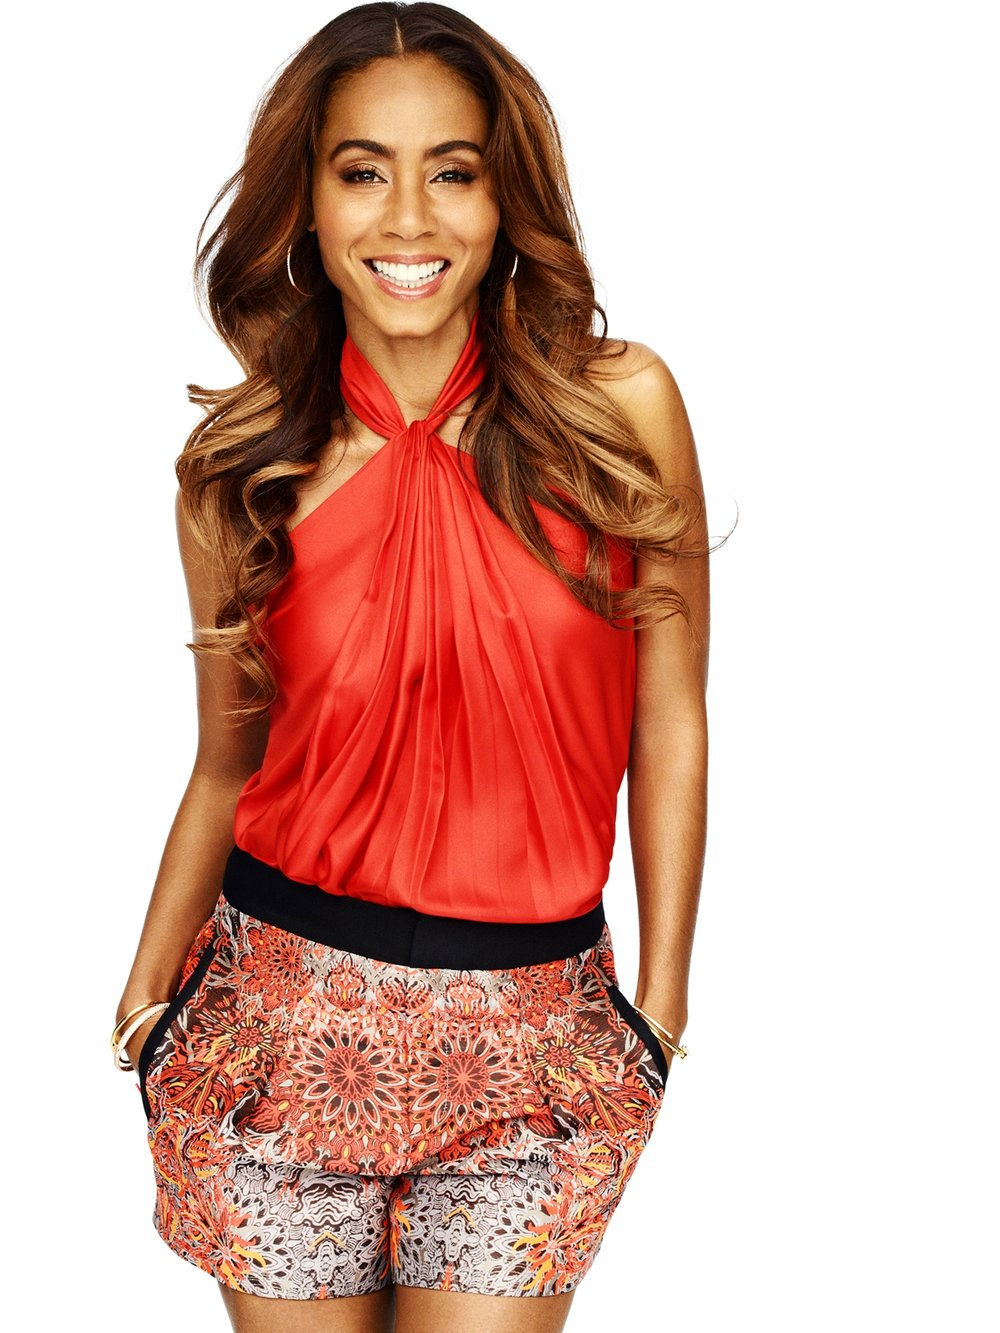 Copy of Jada Pinkett Smith